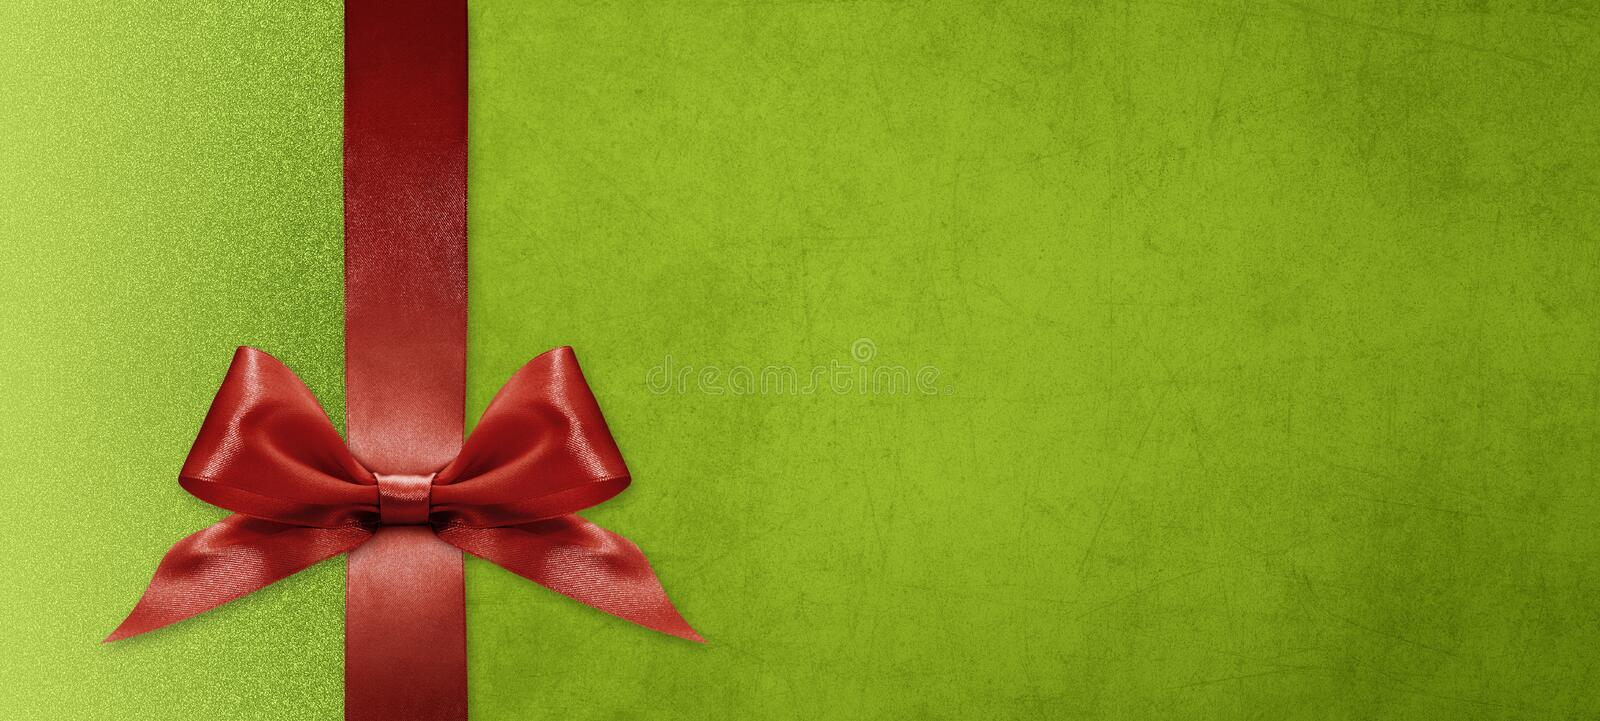 Gift card wishes merry christmas background with red ribbon bow on green shiny vibrant color texture template with blank copy royalty free stock images